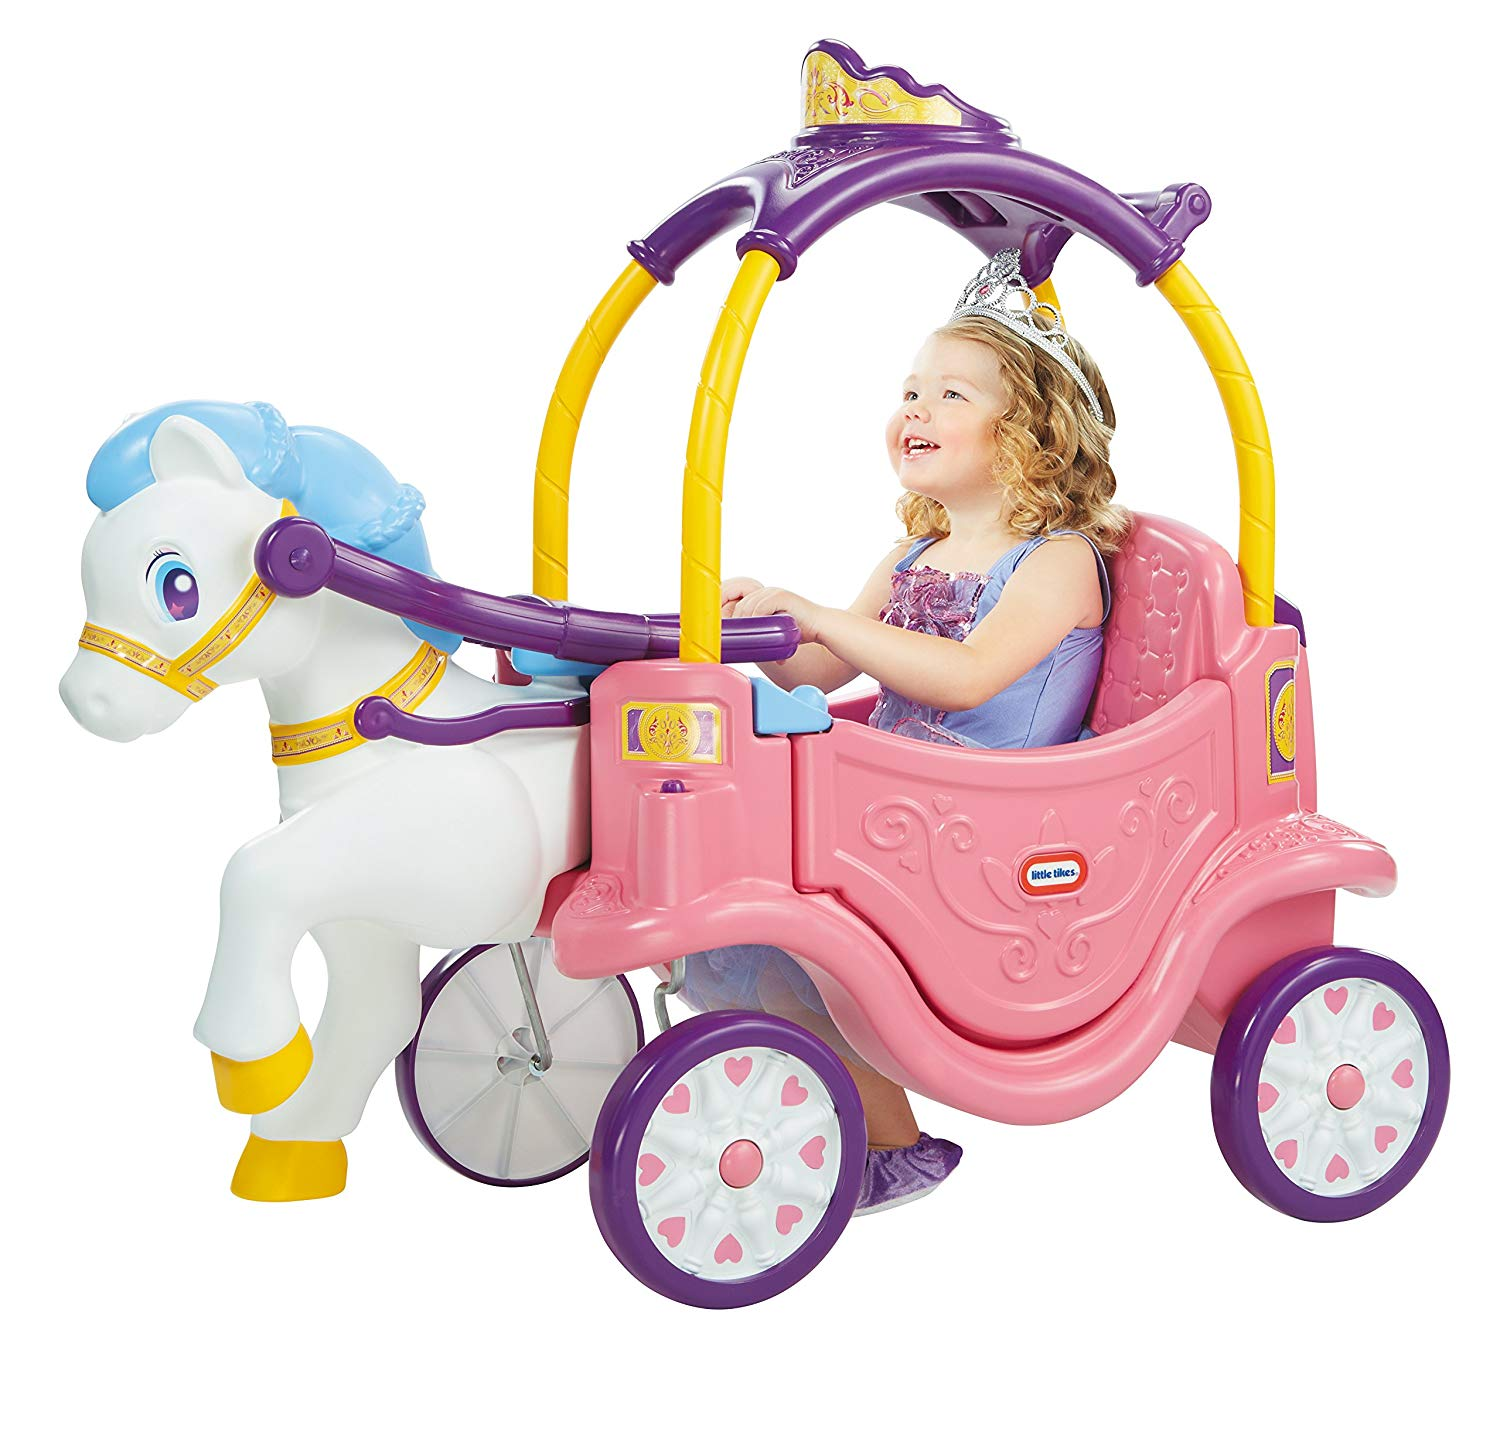 HOT DEAL! Little Tikes Princess Horse & Carriage